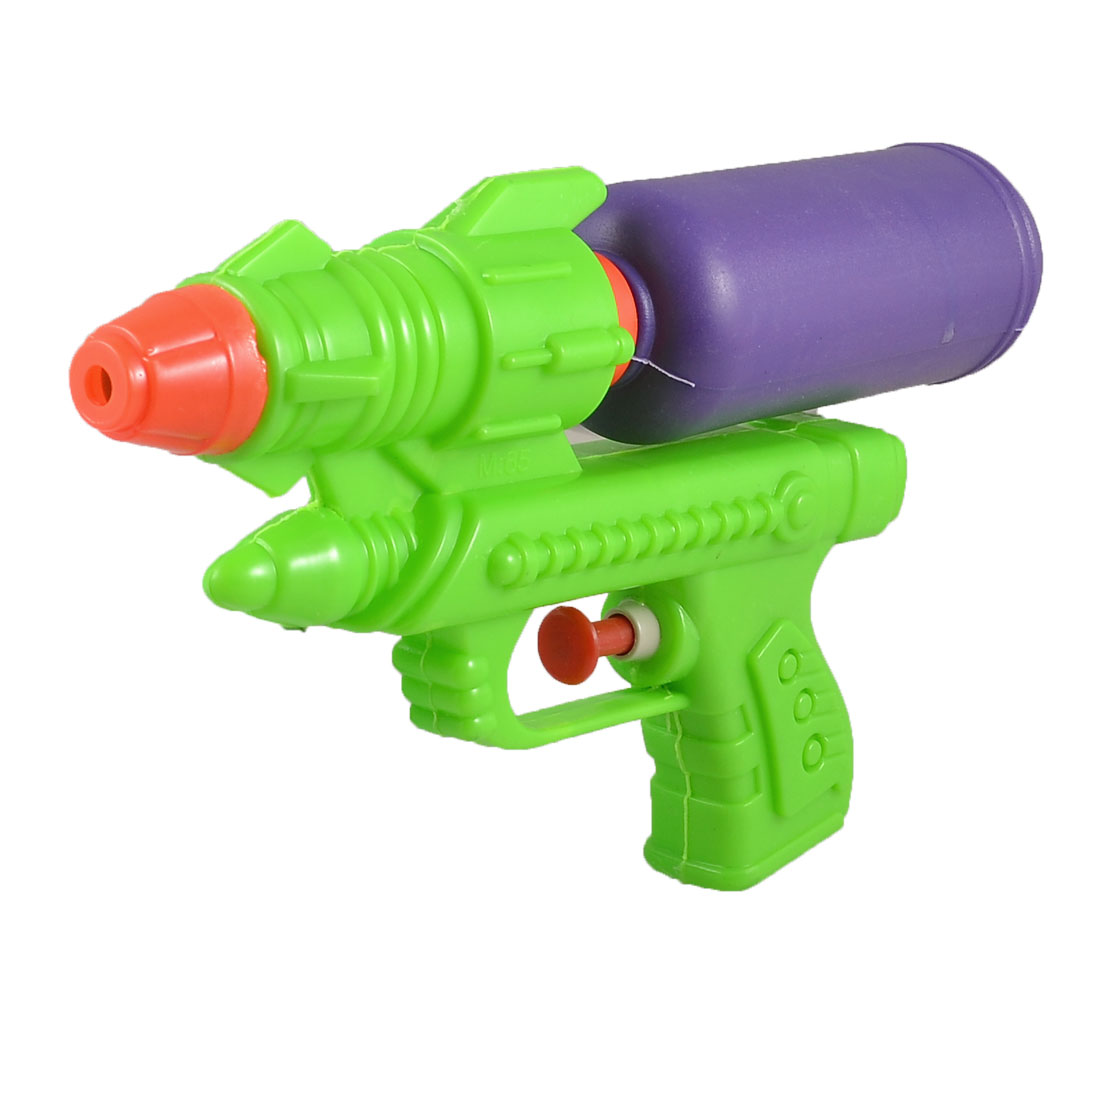 Child-Plastic-Squirt-Water-Spray-Gun-Fight-Playing-Toy-Green-Purple